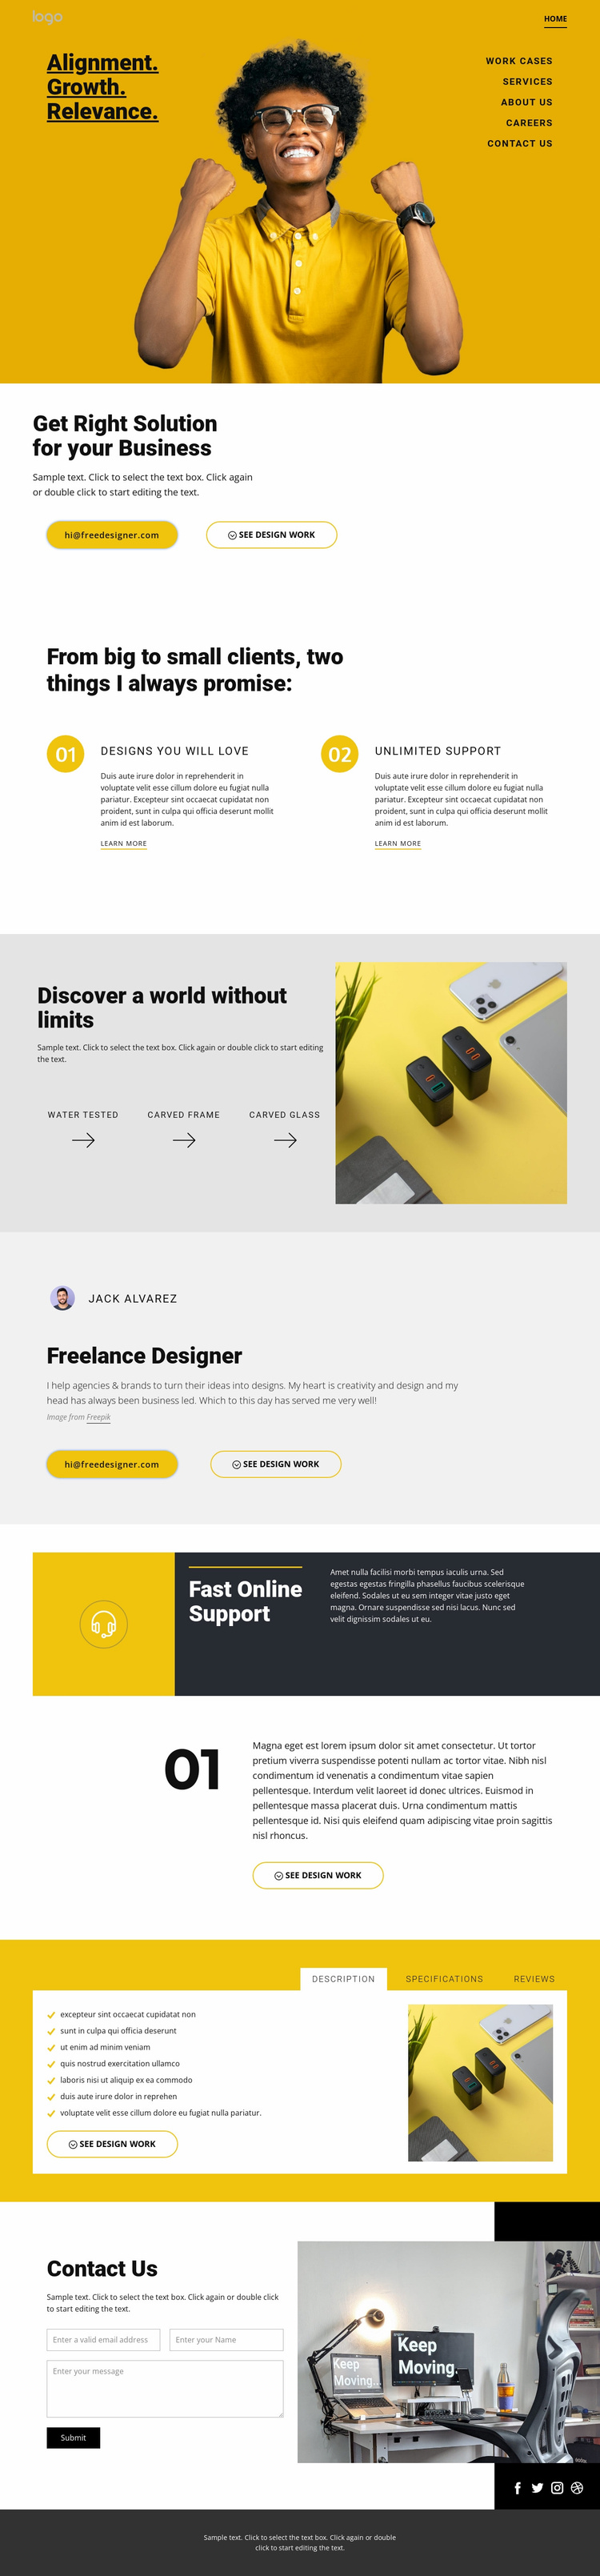 Quality is our goal Landing Page